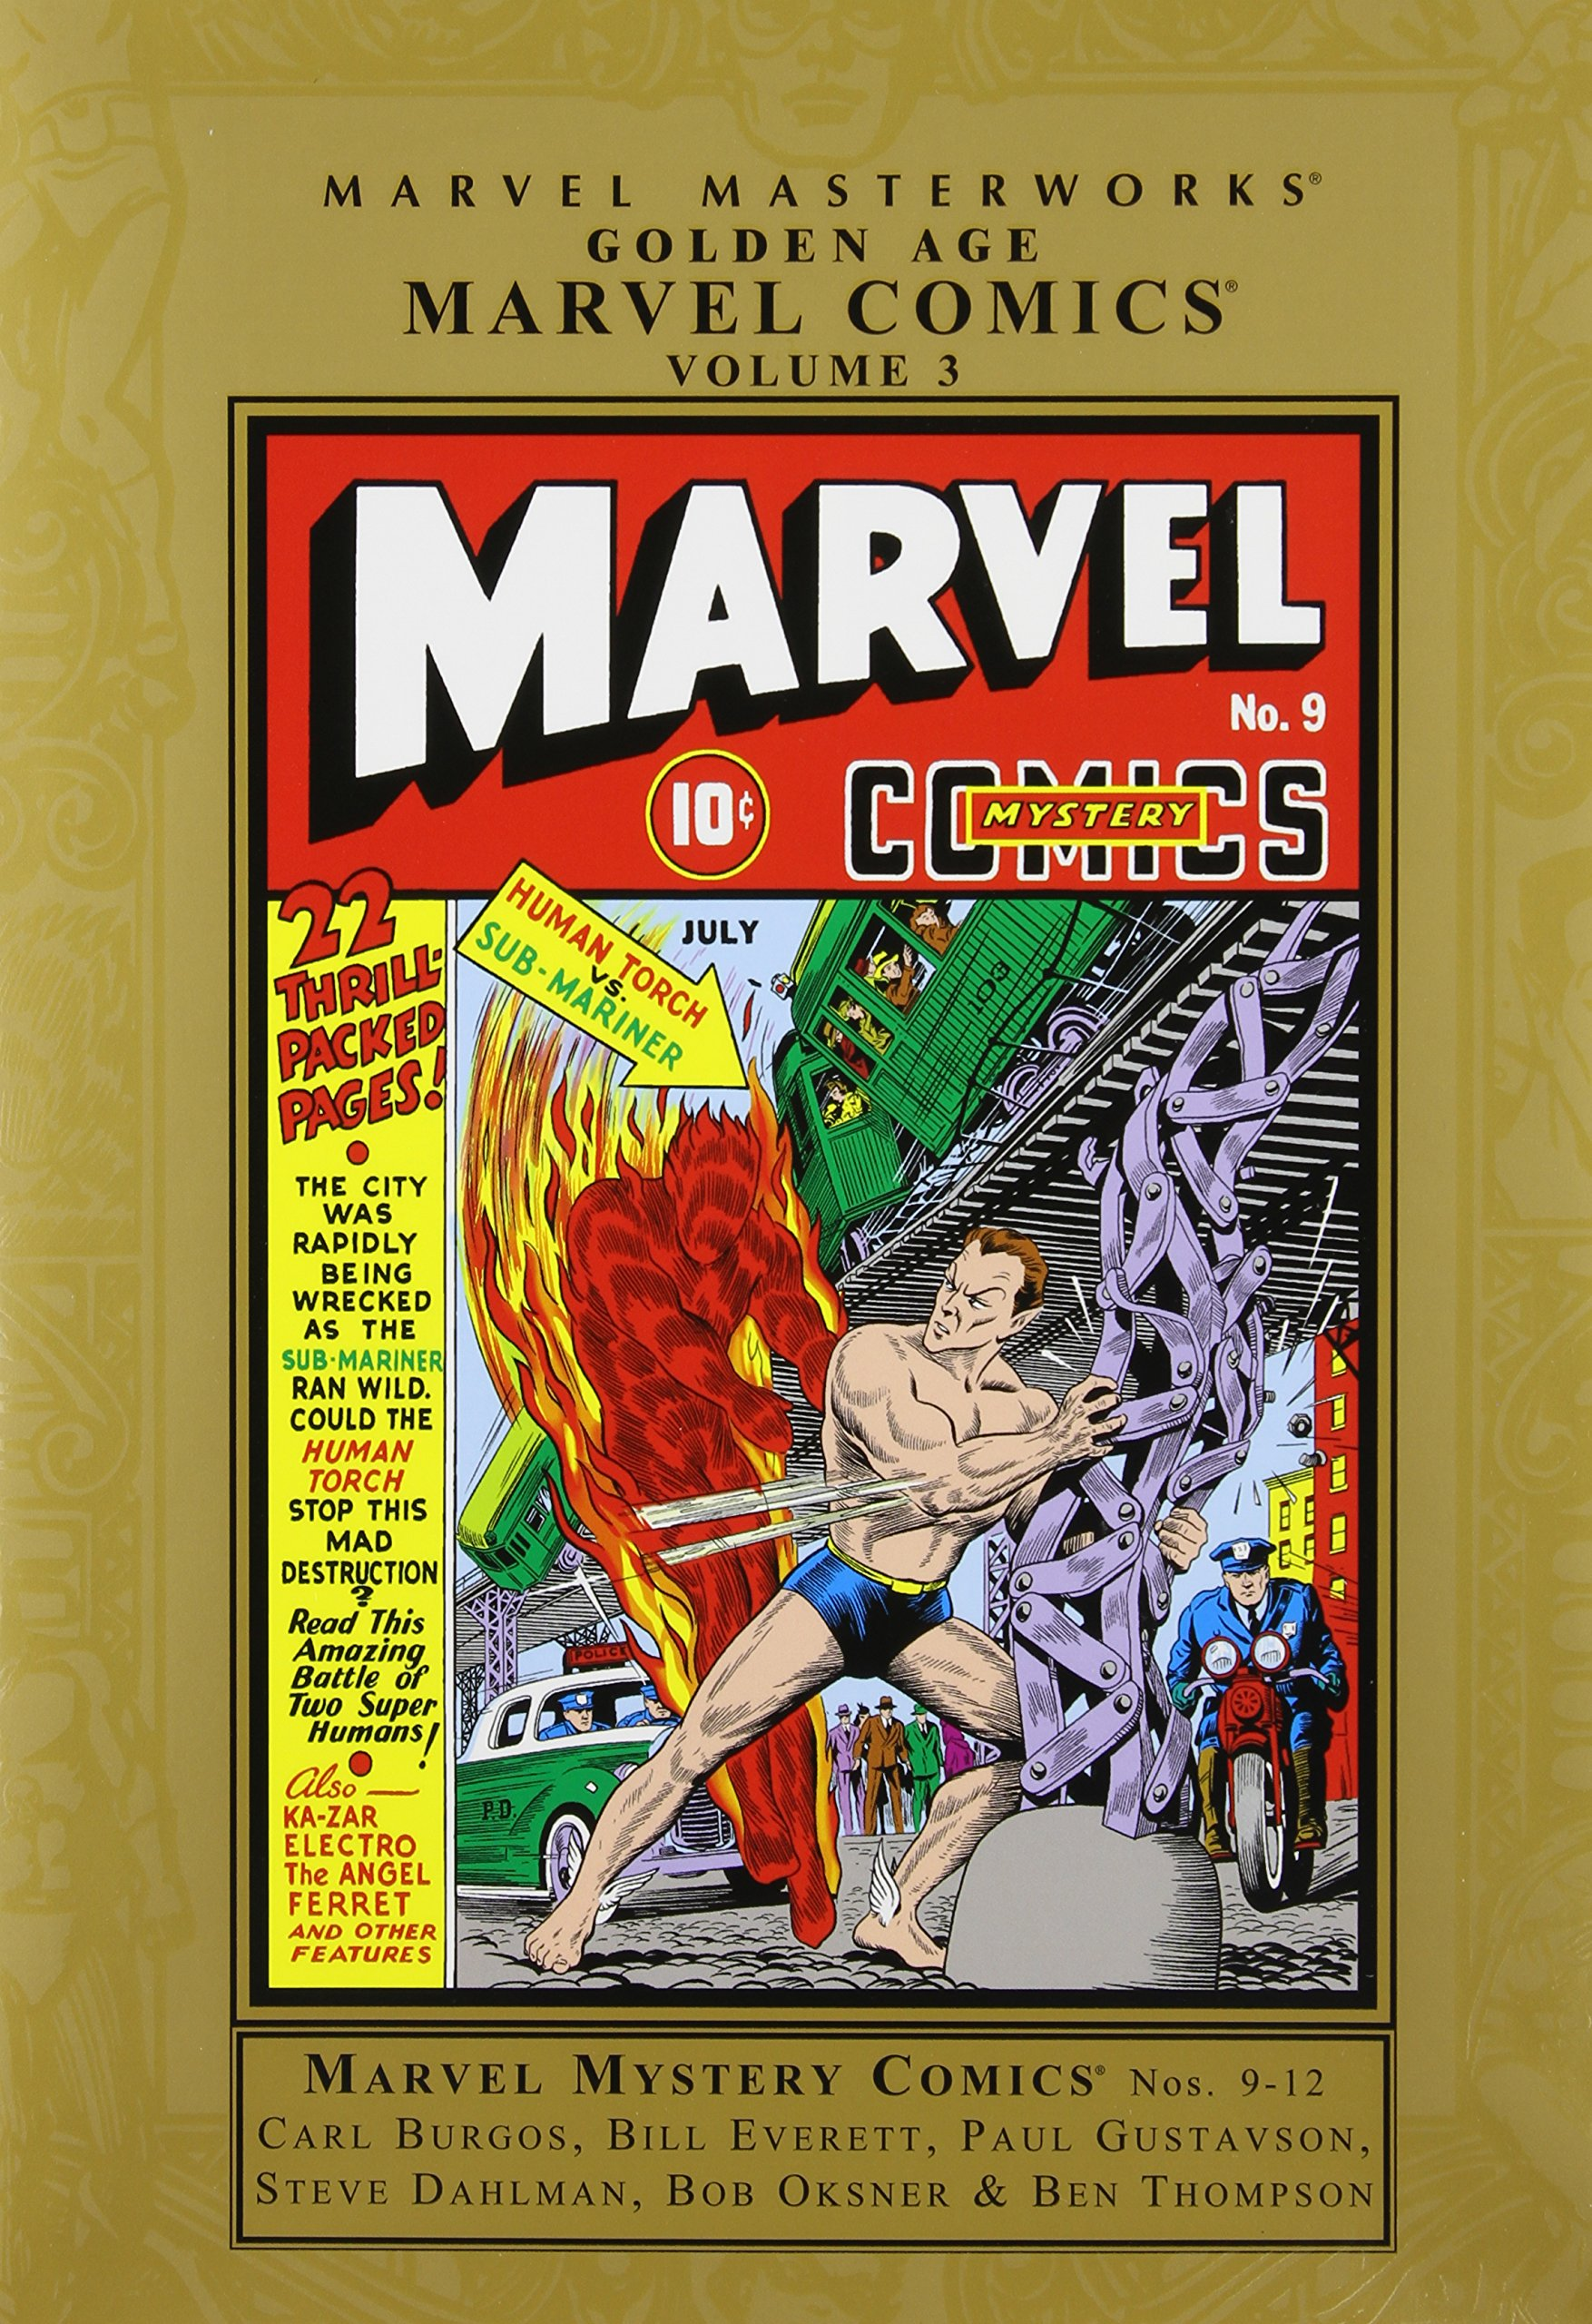 Marvel Masterworks: Golden Age Marvel Comics, Vol. 3 ebook